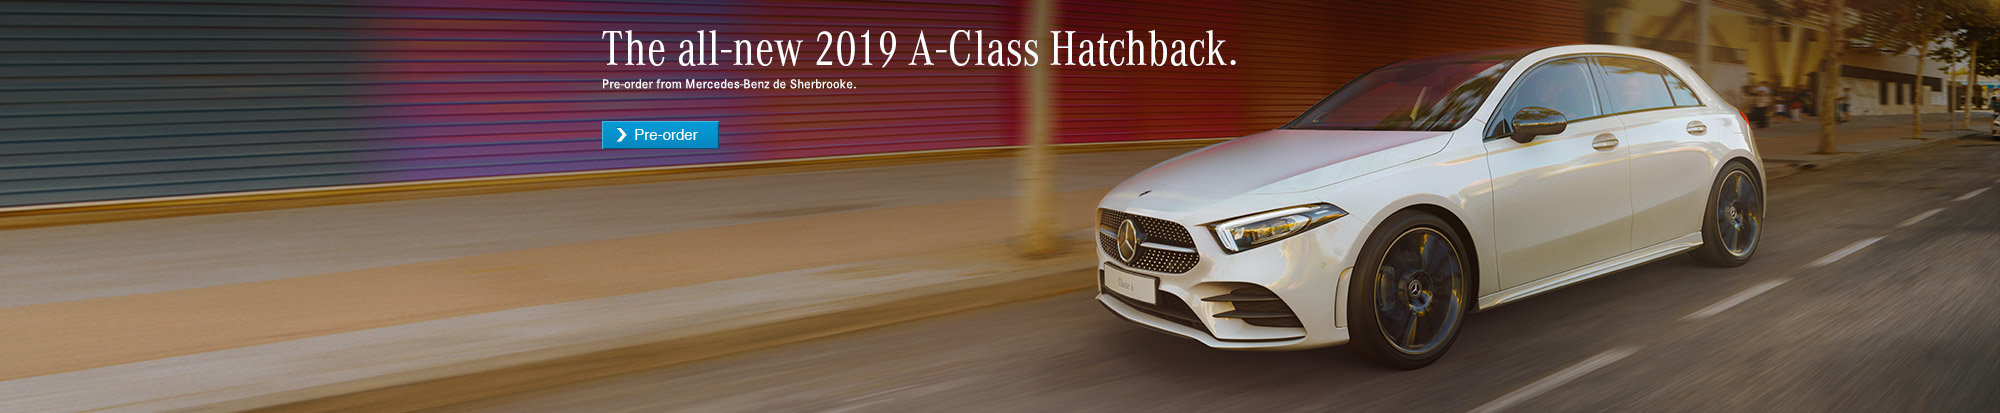 The All-New 2019 A-Class Hatchback.